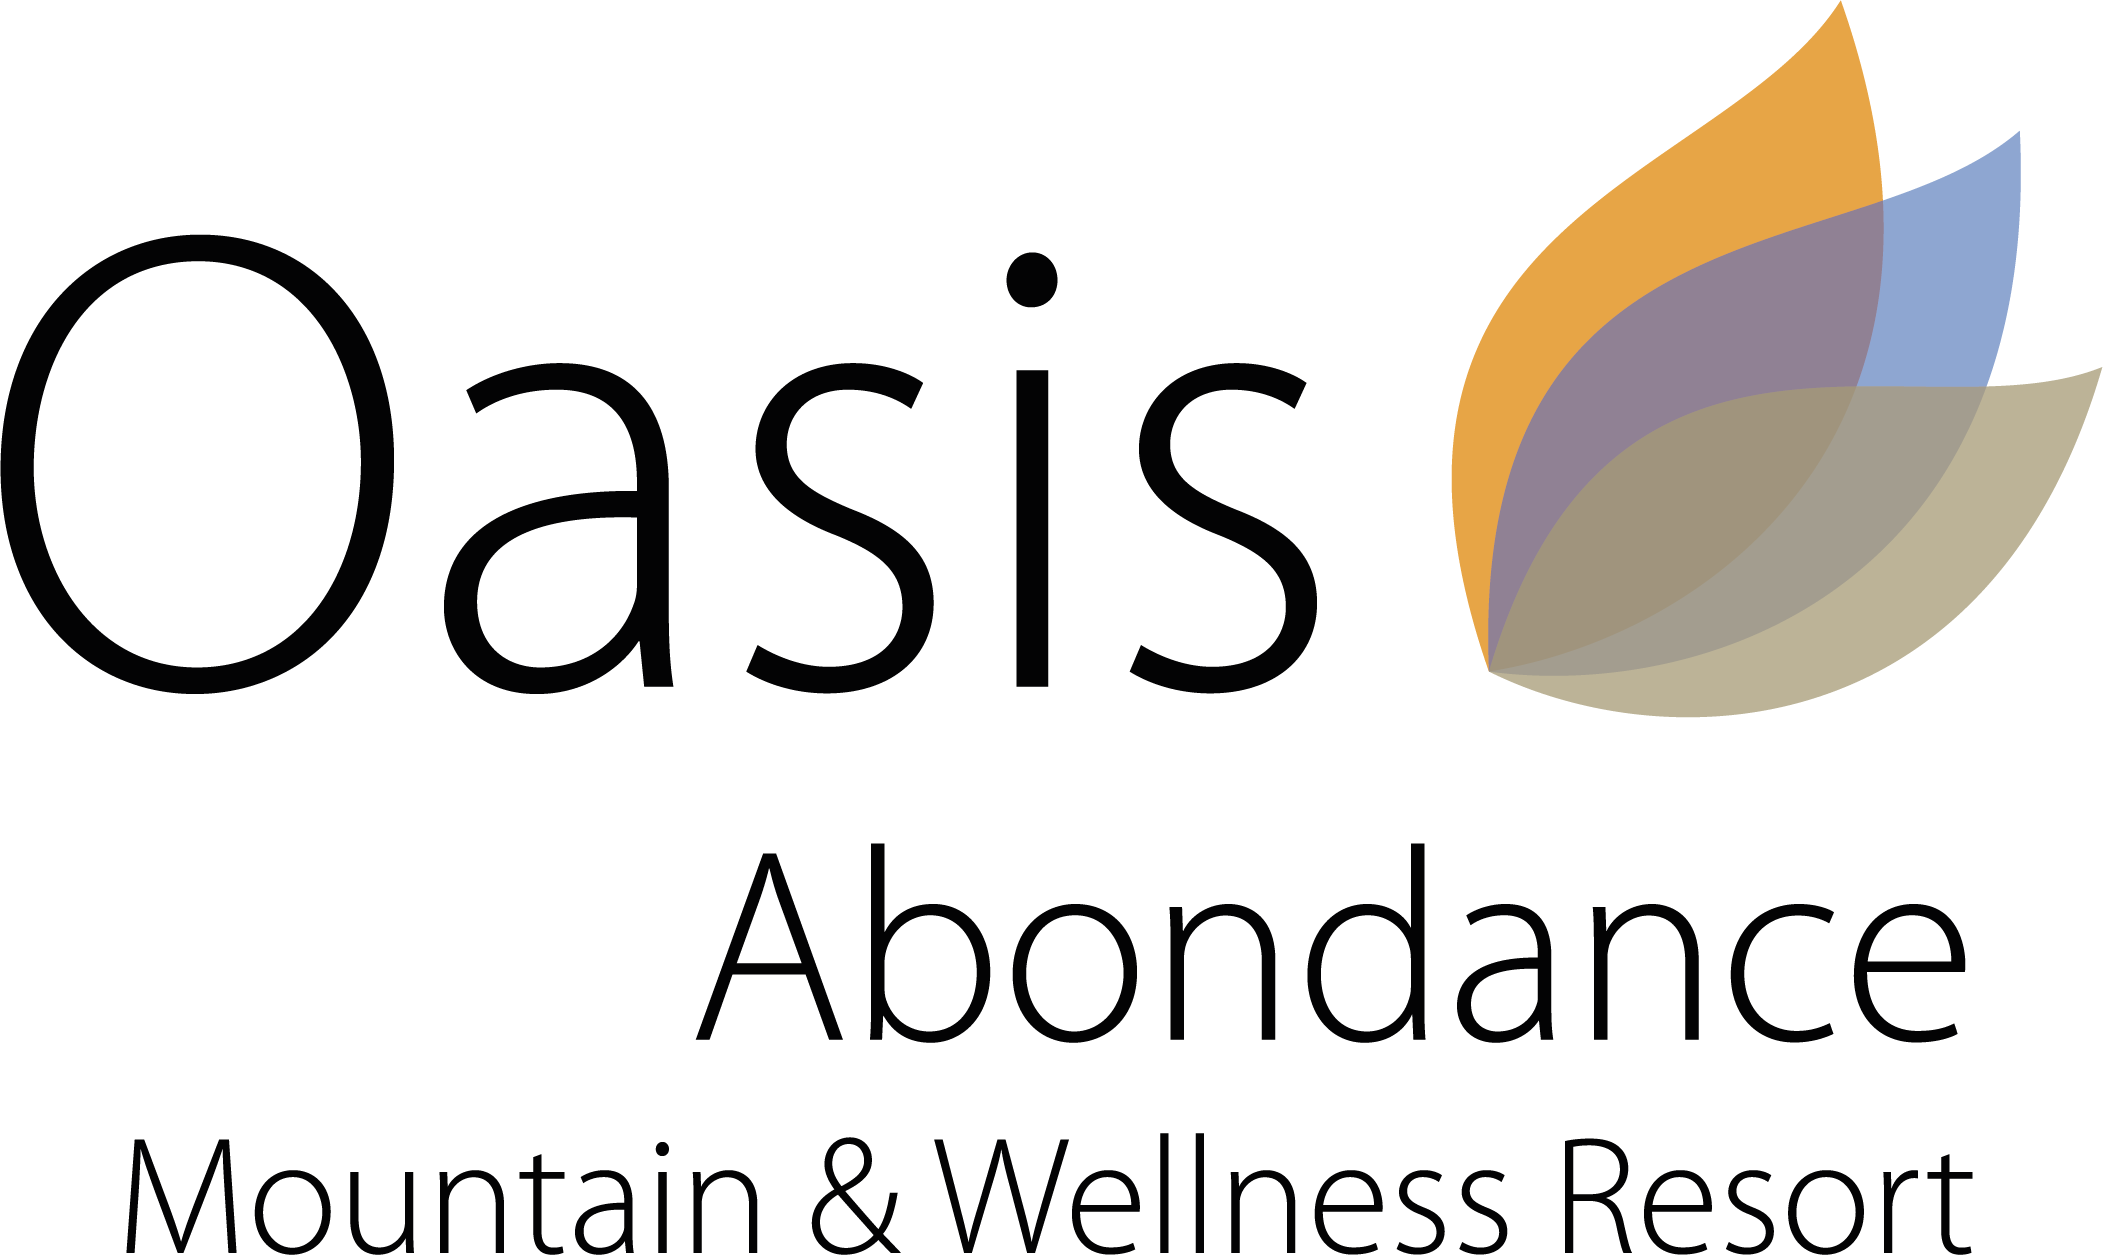 Oasis Abondance | Luxury wellness resort in the French Alps